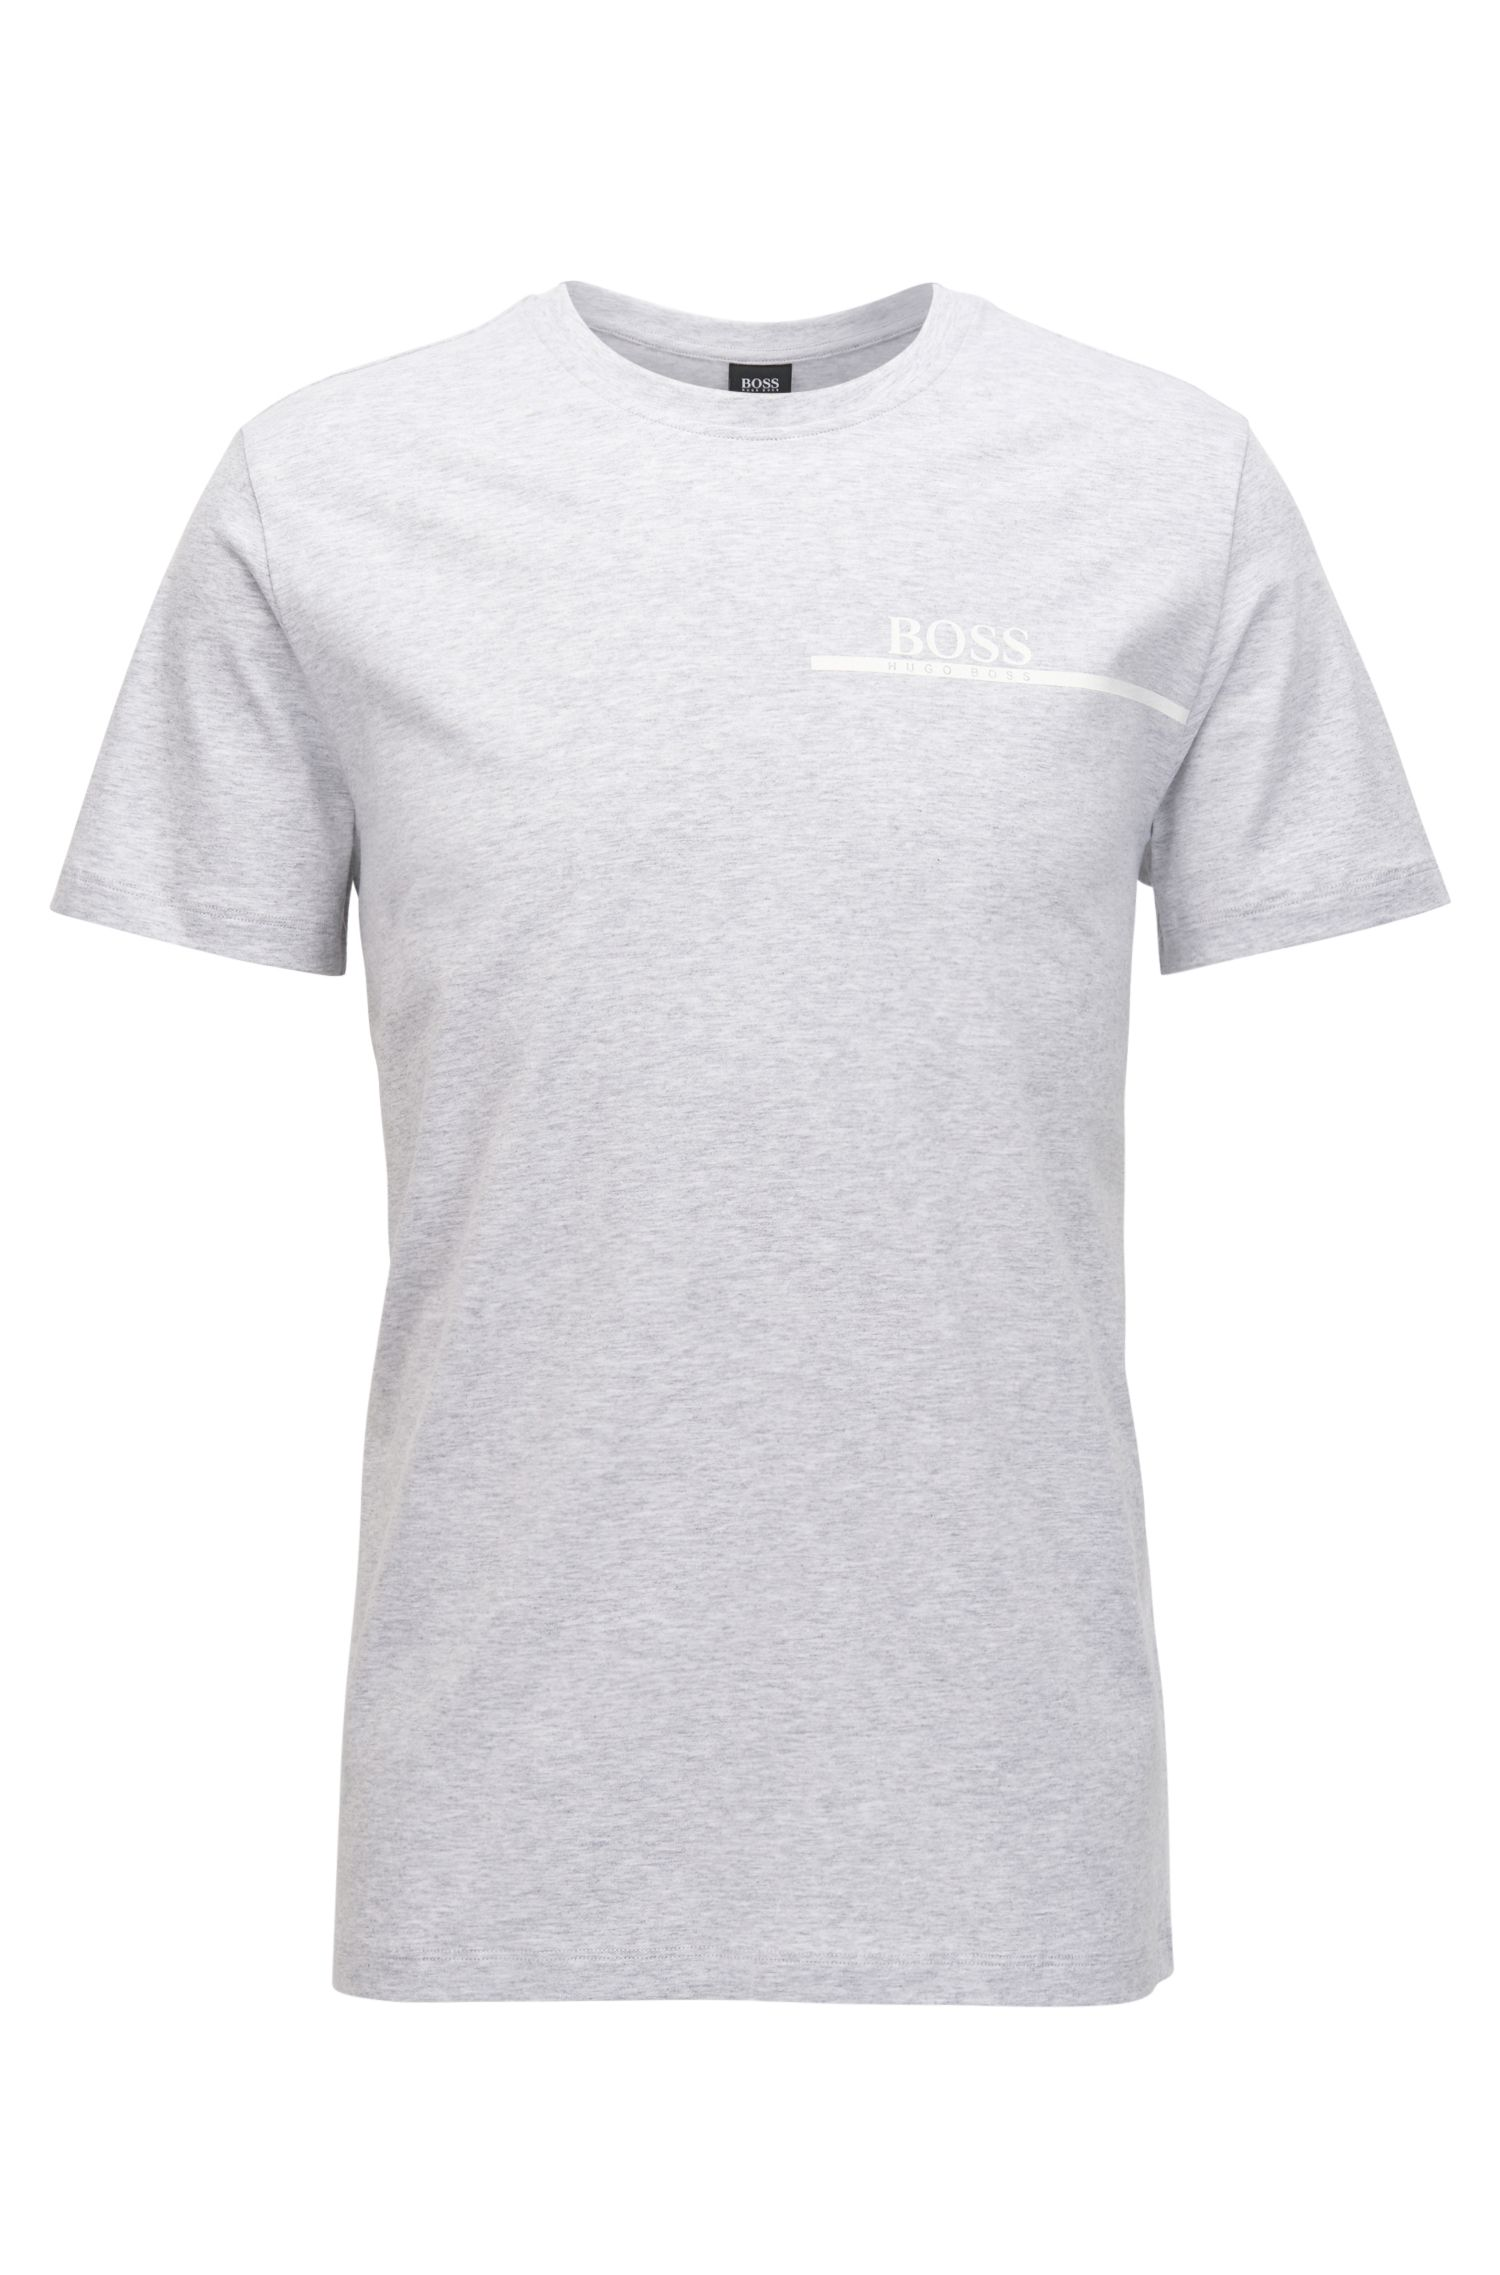 T-shirt relaxed fit in cotone con logo stampato